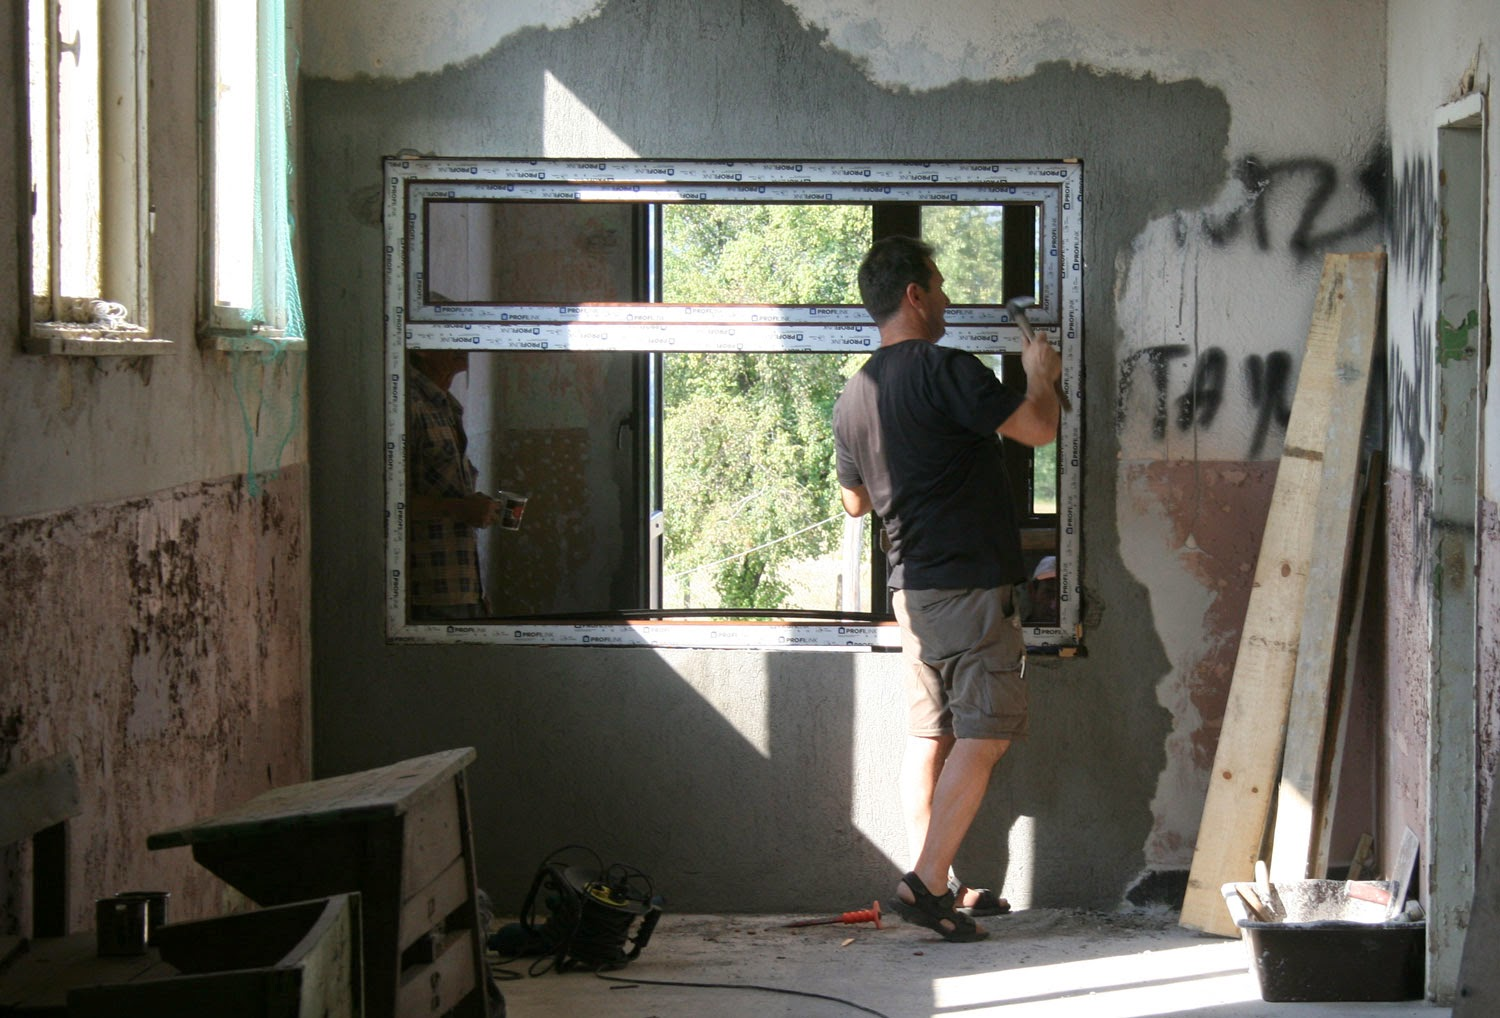 A window being fitted